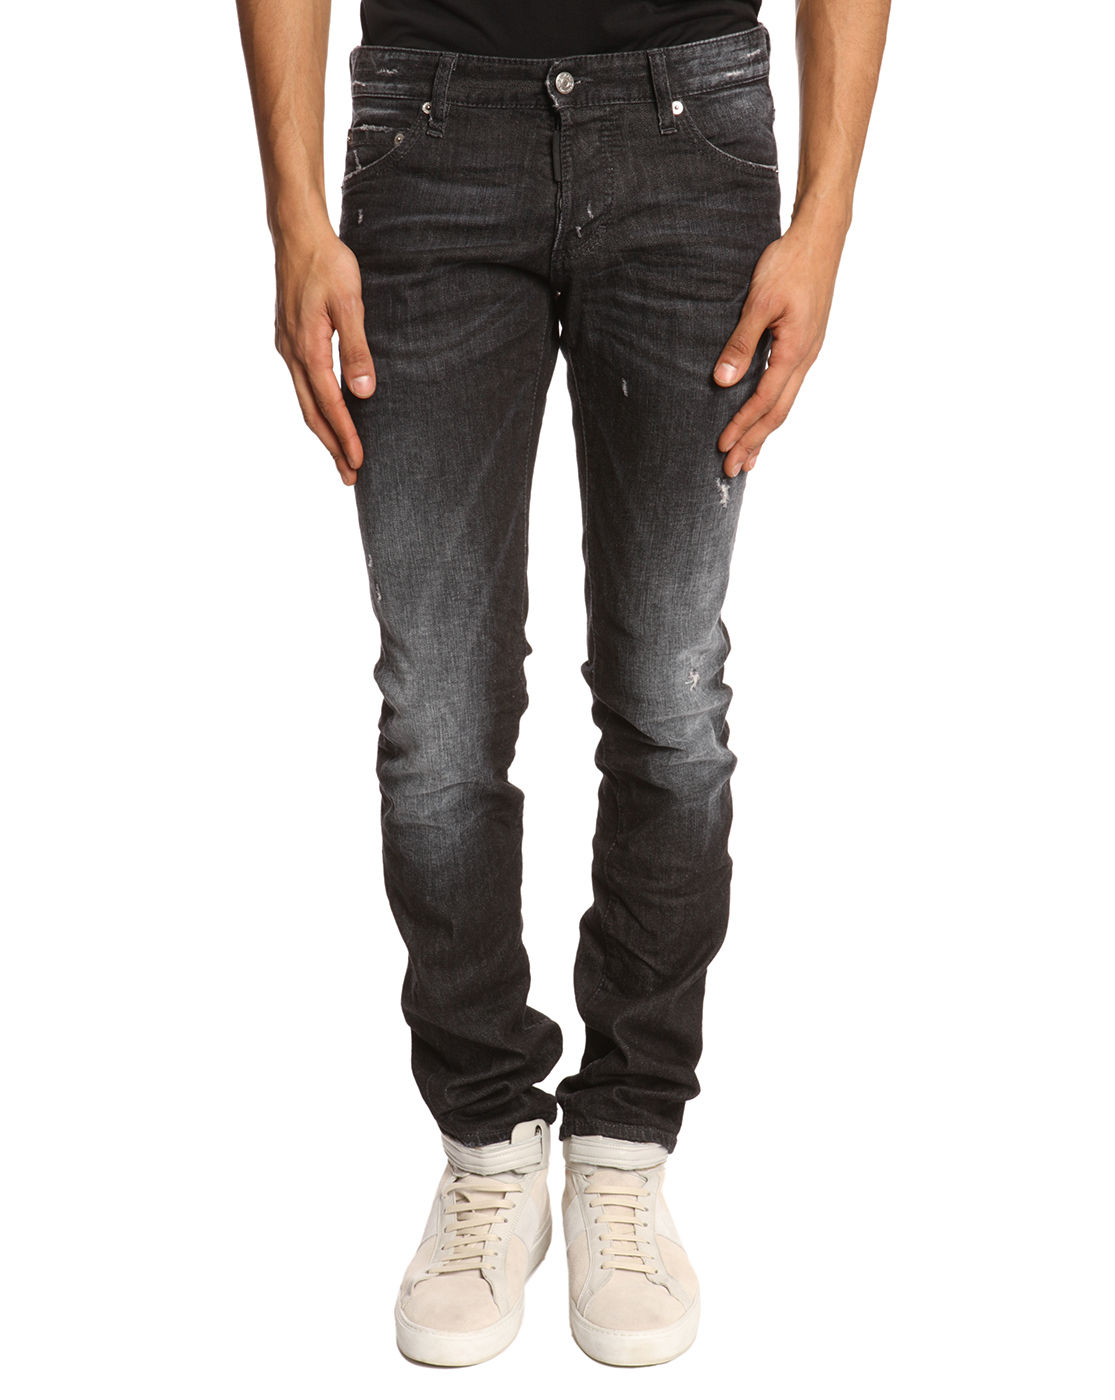 Black Faded Jeans Mens Ye Jean